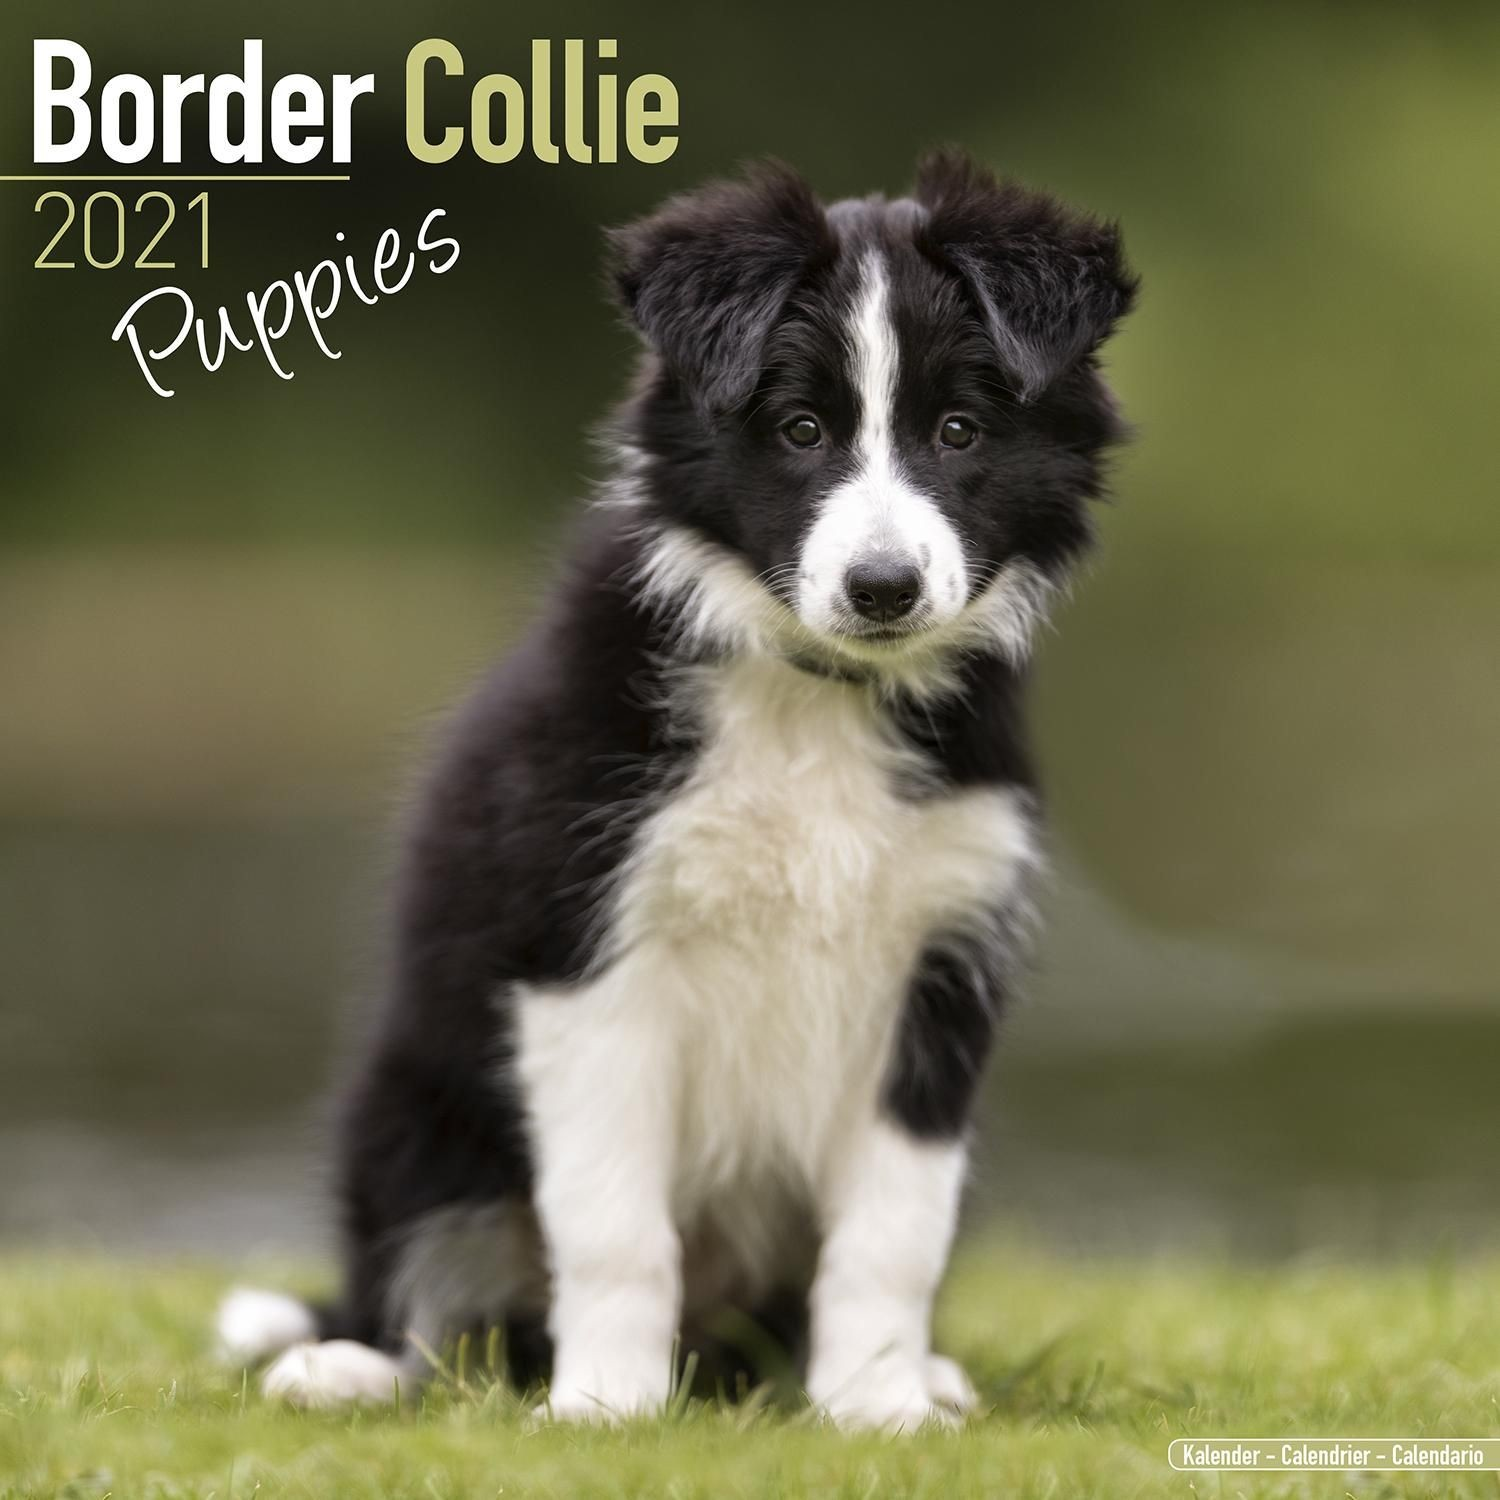 Border Collie Puppies Wall Calendar 2021 by Avonside